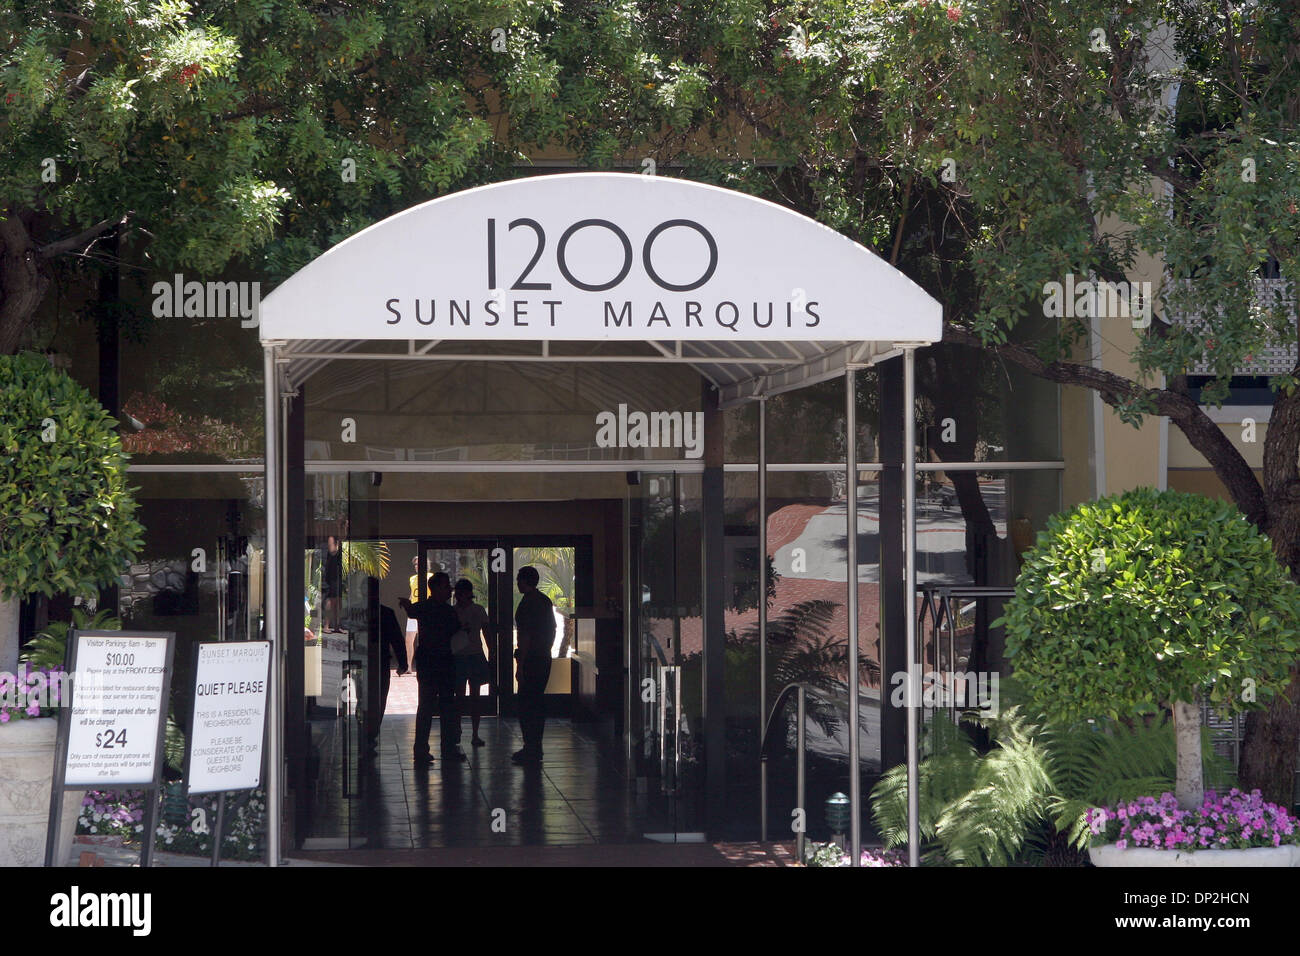 Jun 04, 2006; Hollywood, CA, USA; This boutique hotel caters to a rock-n-roll social scene and the late-rising set. It has evolved into ground zero for visiting rockers since opening in 1963 on the hem of the Sunset Strip. Perhaps it's the on-site recording studio or mysticism of nearby live-music institutions like the Whisky and Roxy that lure a laundry list of celebs, including t - Stock Image